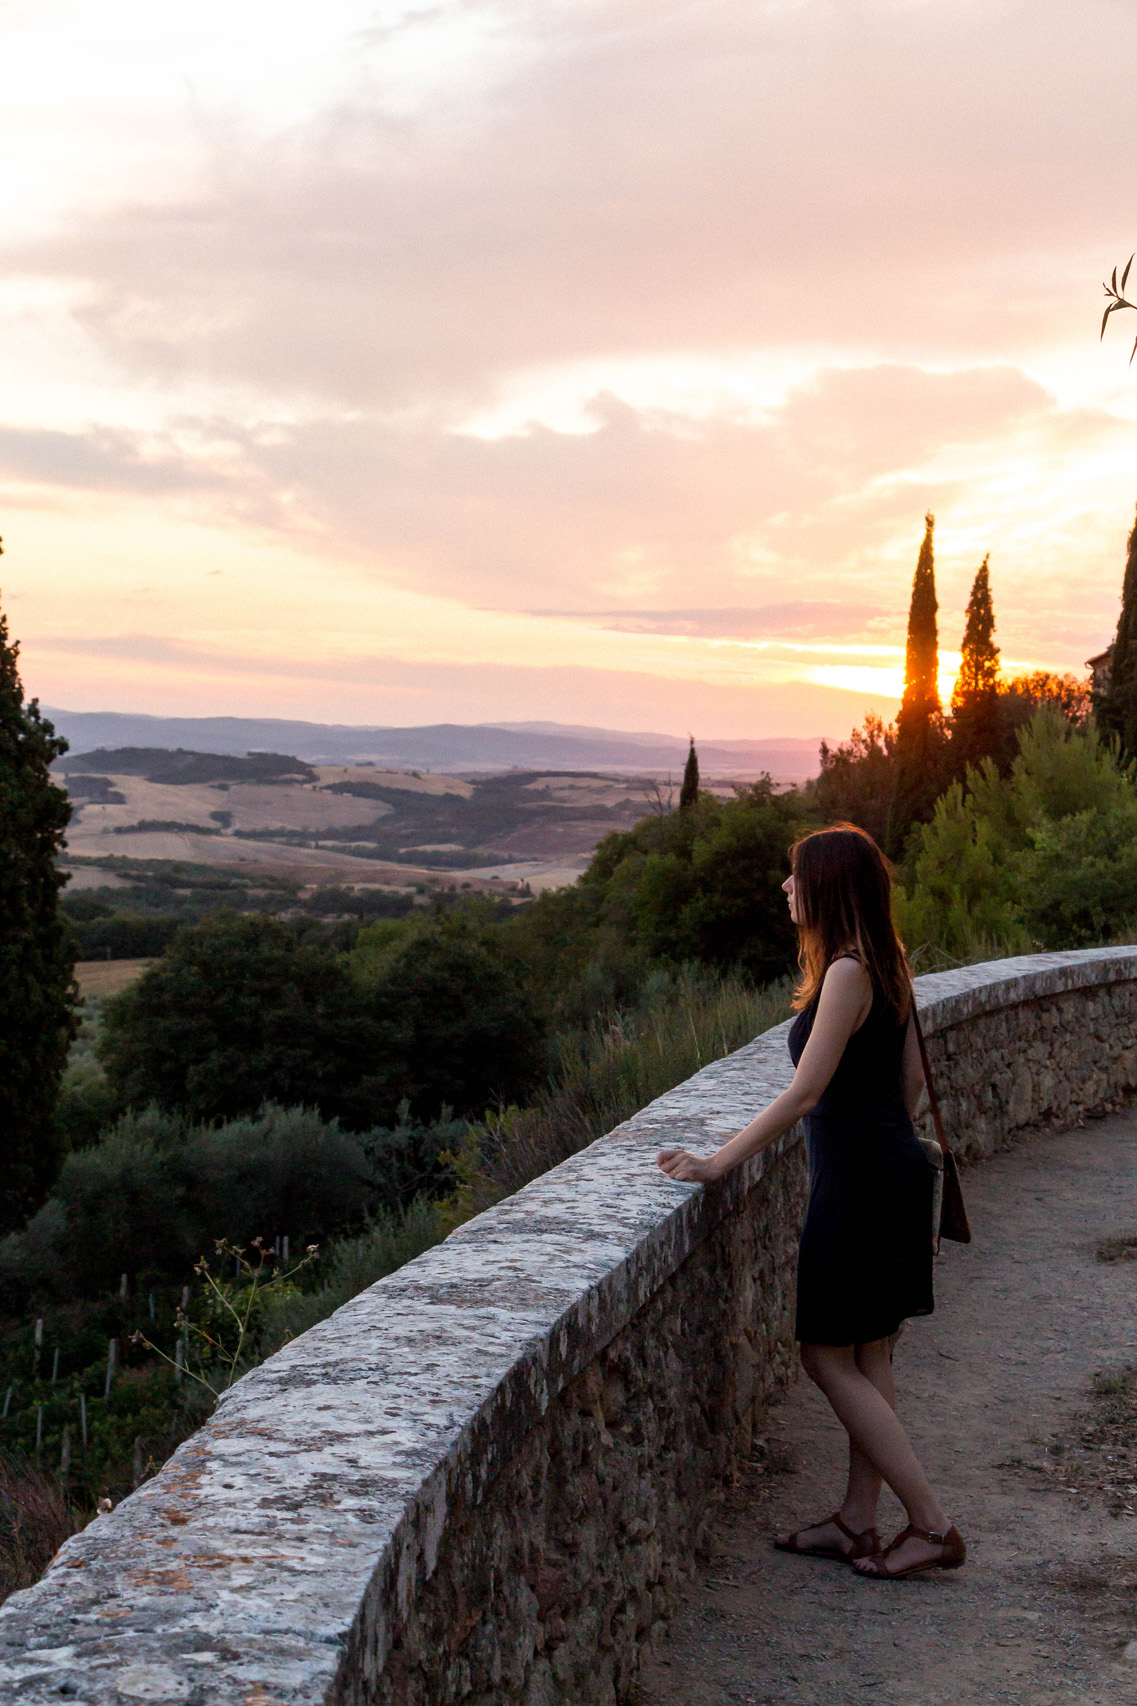 Sunset over the Val d'Orcia, seen from Pienza